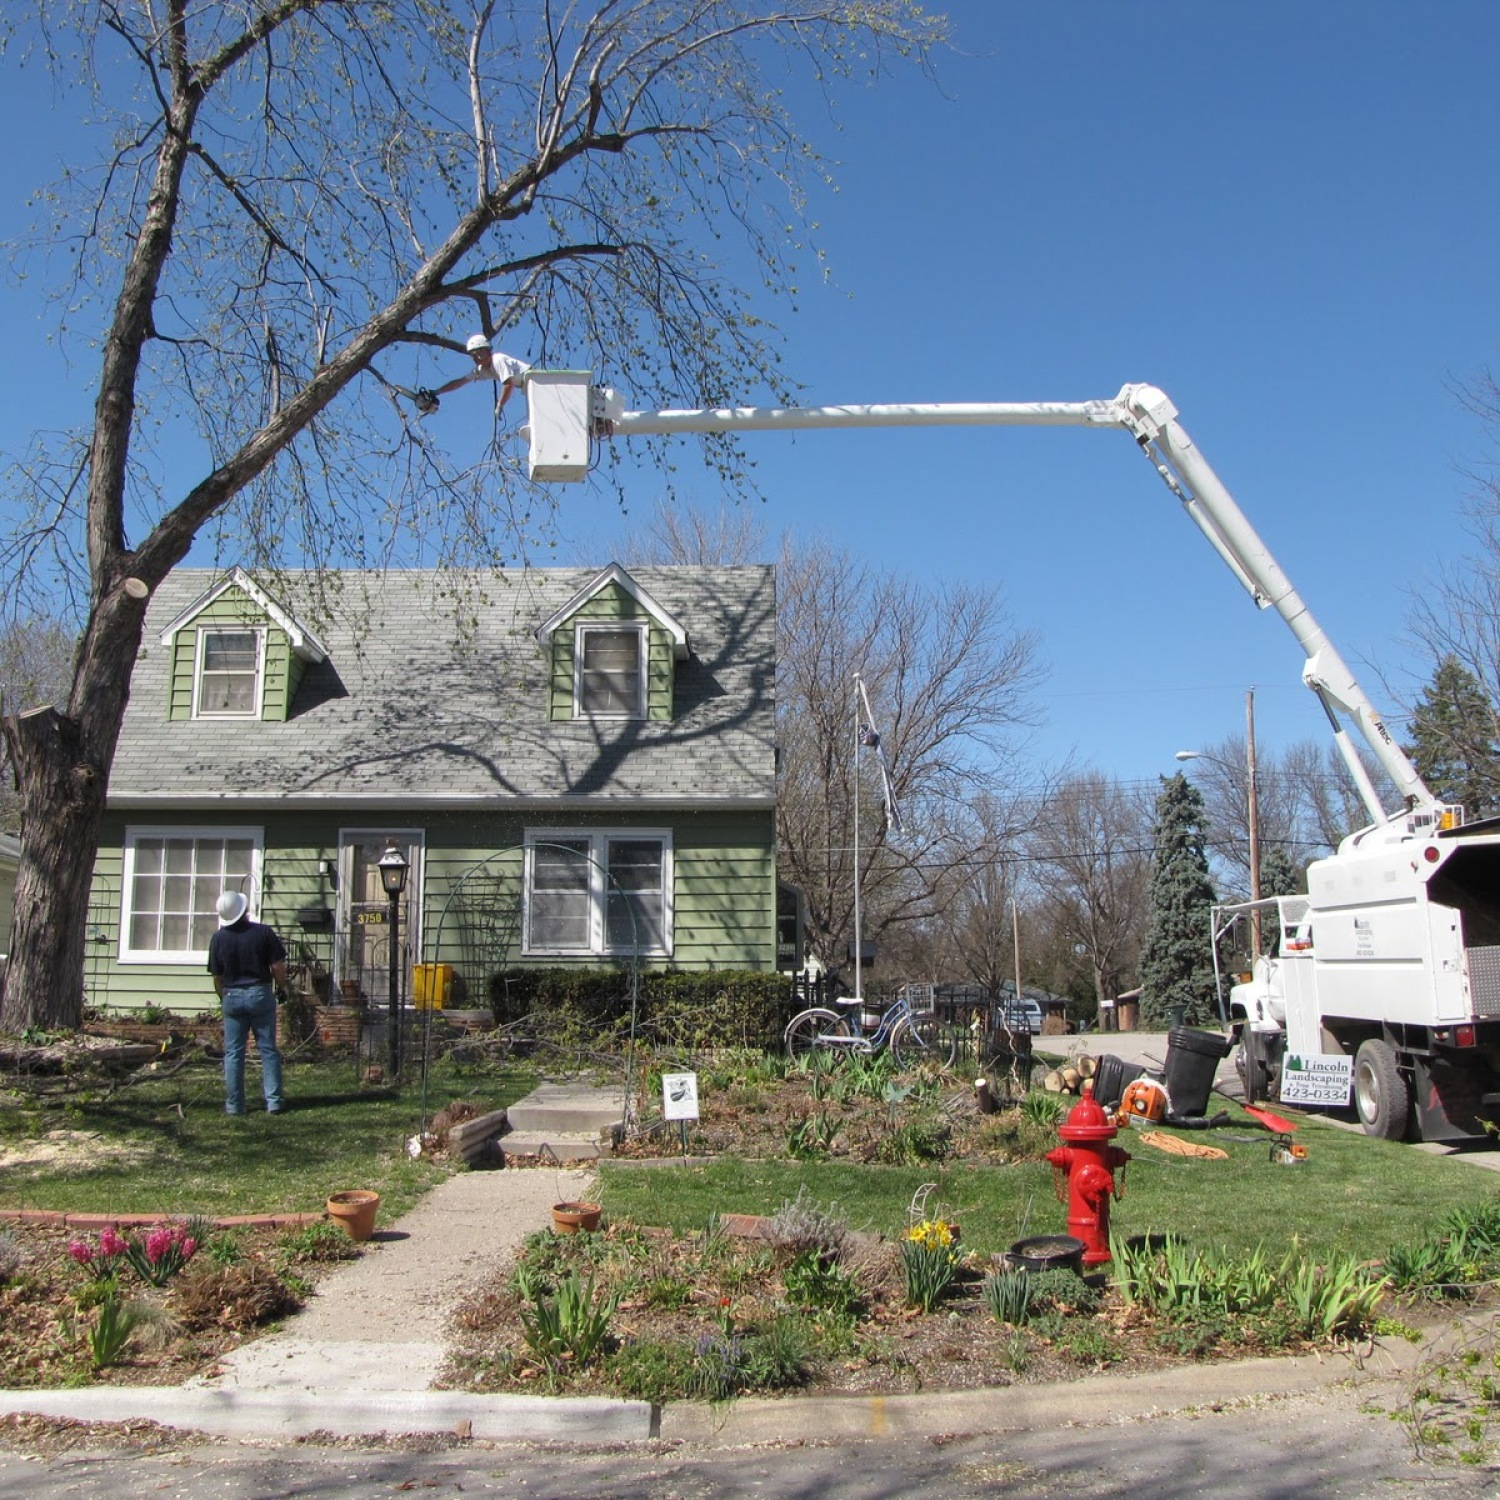 Silver Maple | Bad Trees | Tree Choices for the Yard